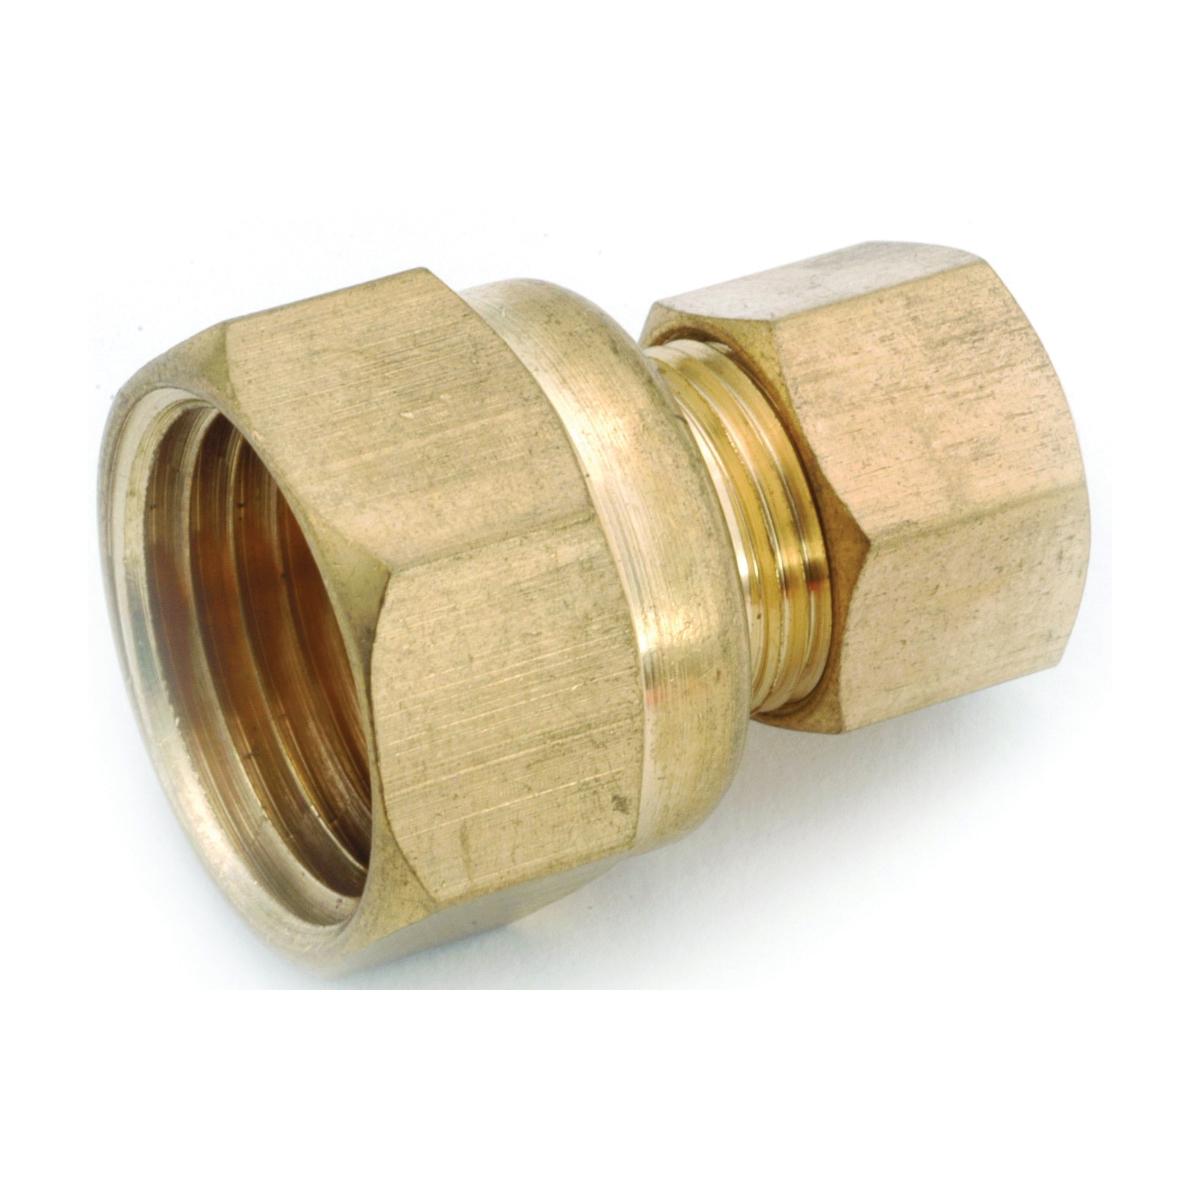 Picture of Anderson Metals 750066-0406 Tubing Coupling, 1/4 x 3/8 in, Compression x FIP, Brass